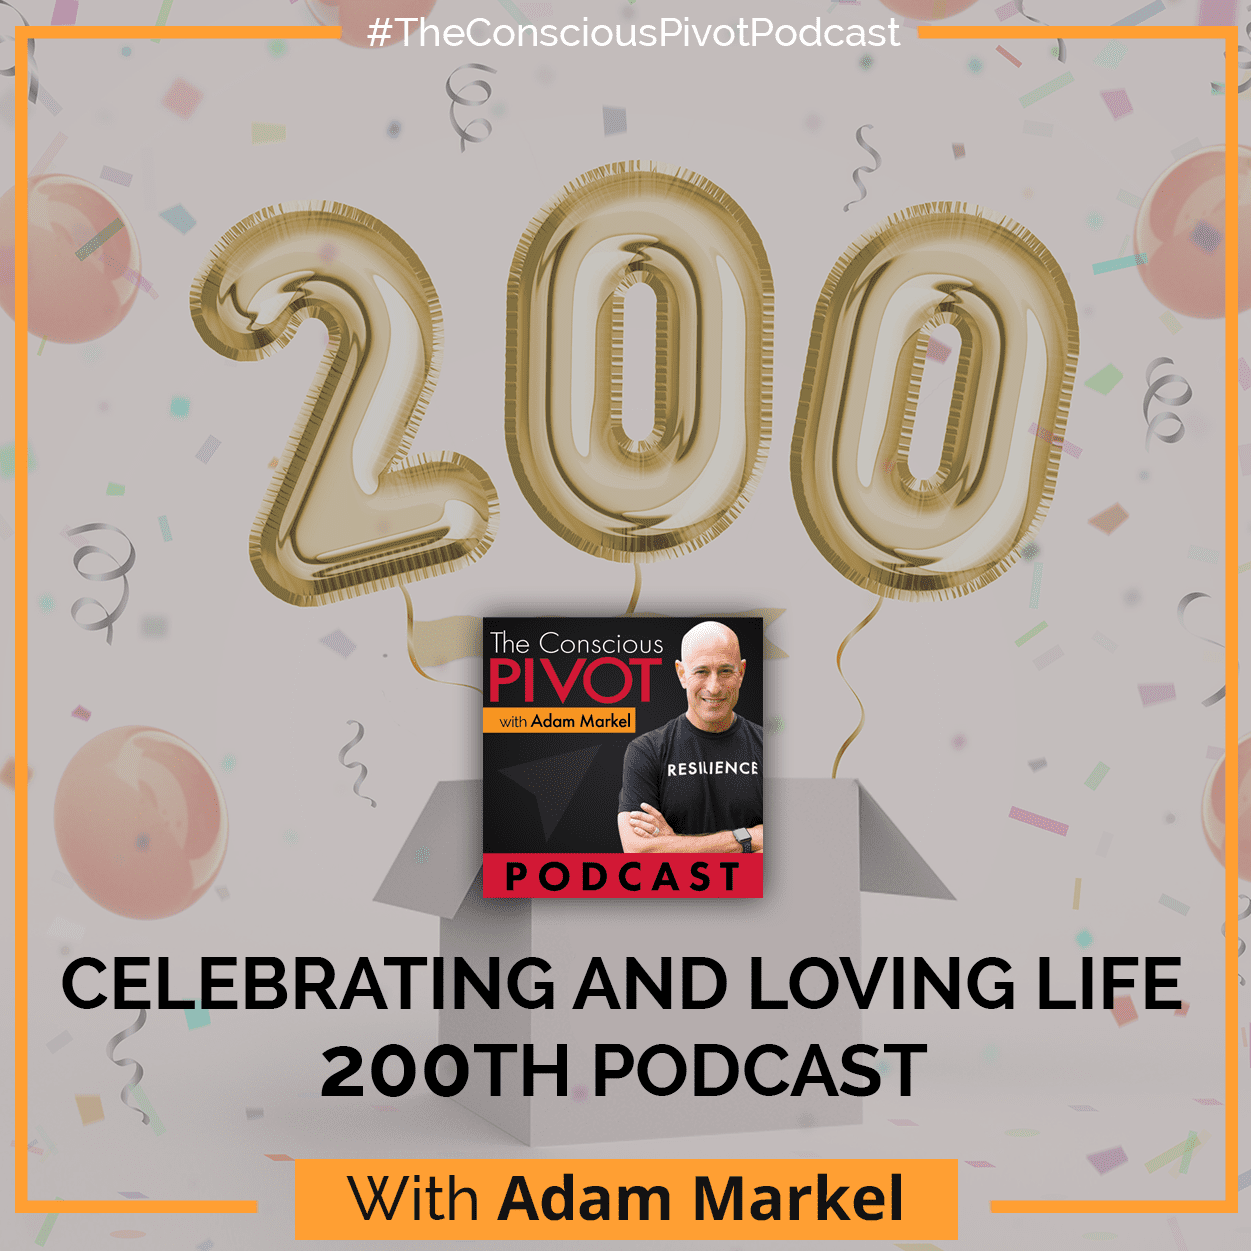 200th Podcast: Celebrating And Loving Life